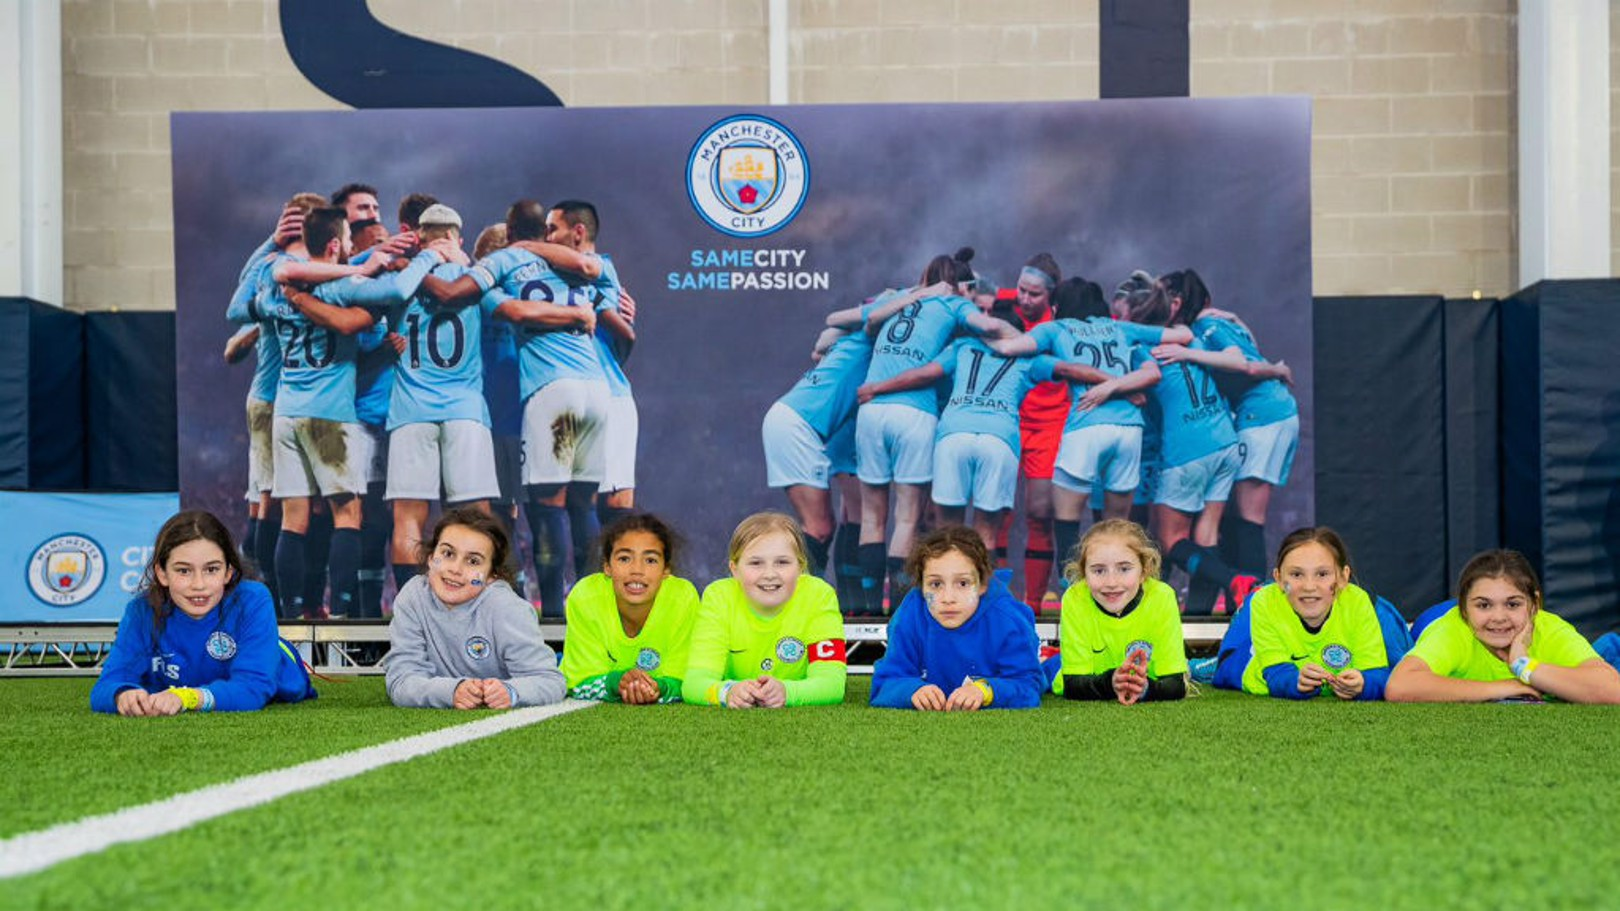 SAMEGOALS: Close to 2,000 girls, boys and parents enjoyed a day of fun and football at the #SameGoals Football Festival